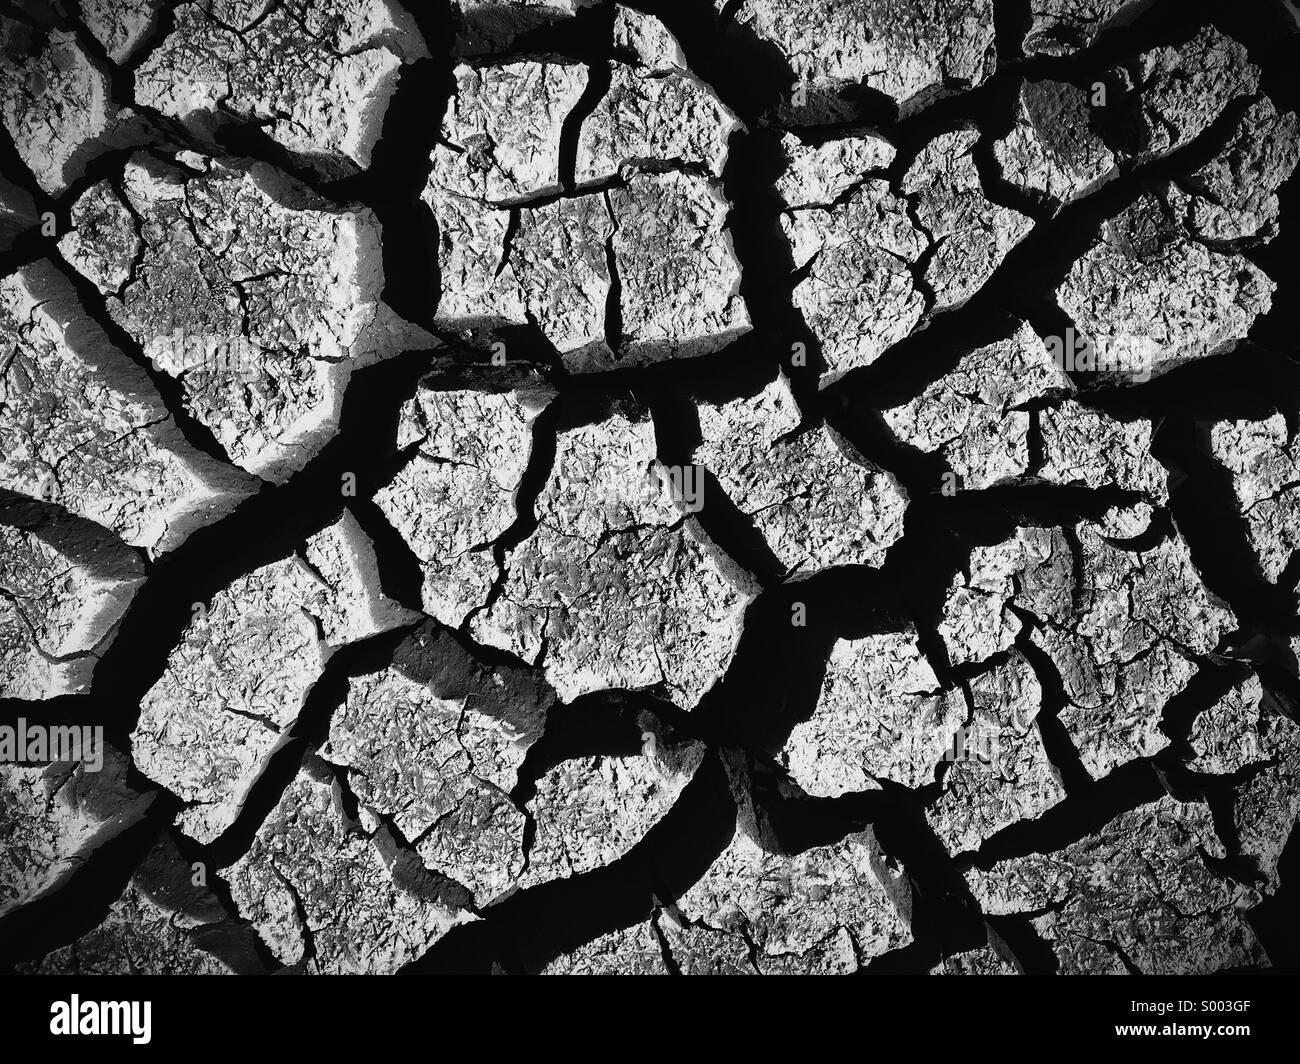 Cracked, parched earth. - Stock Image